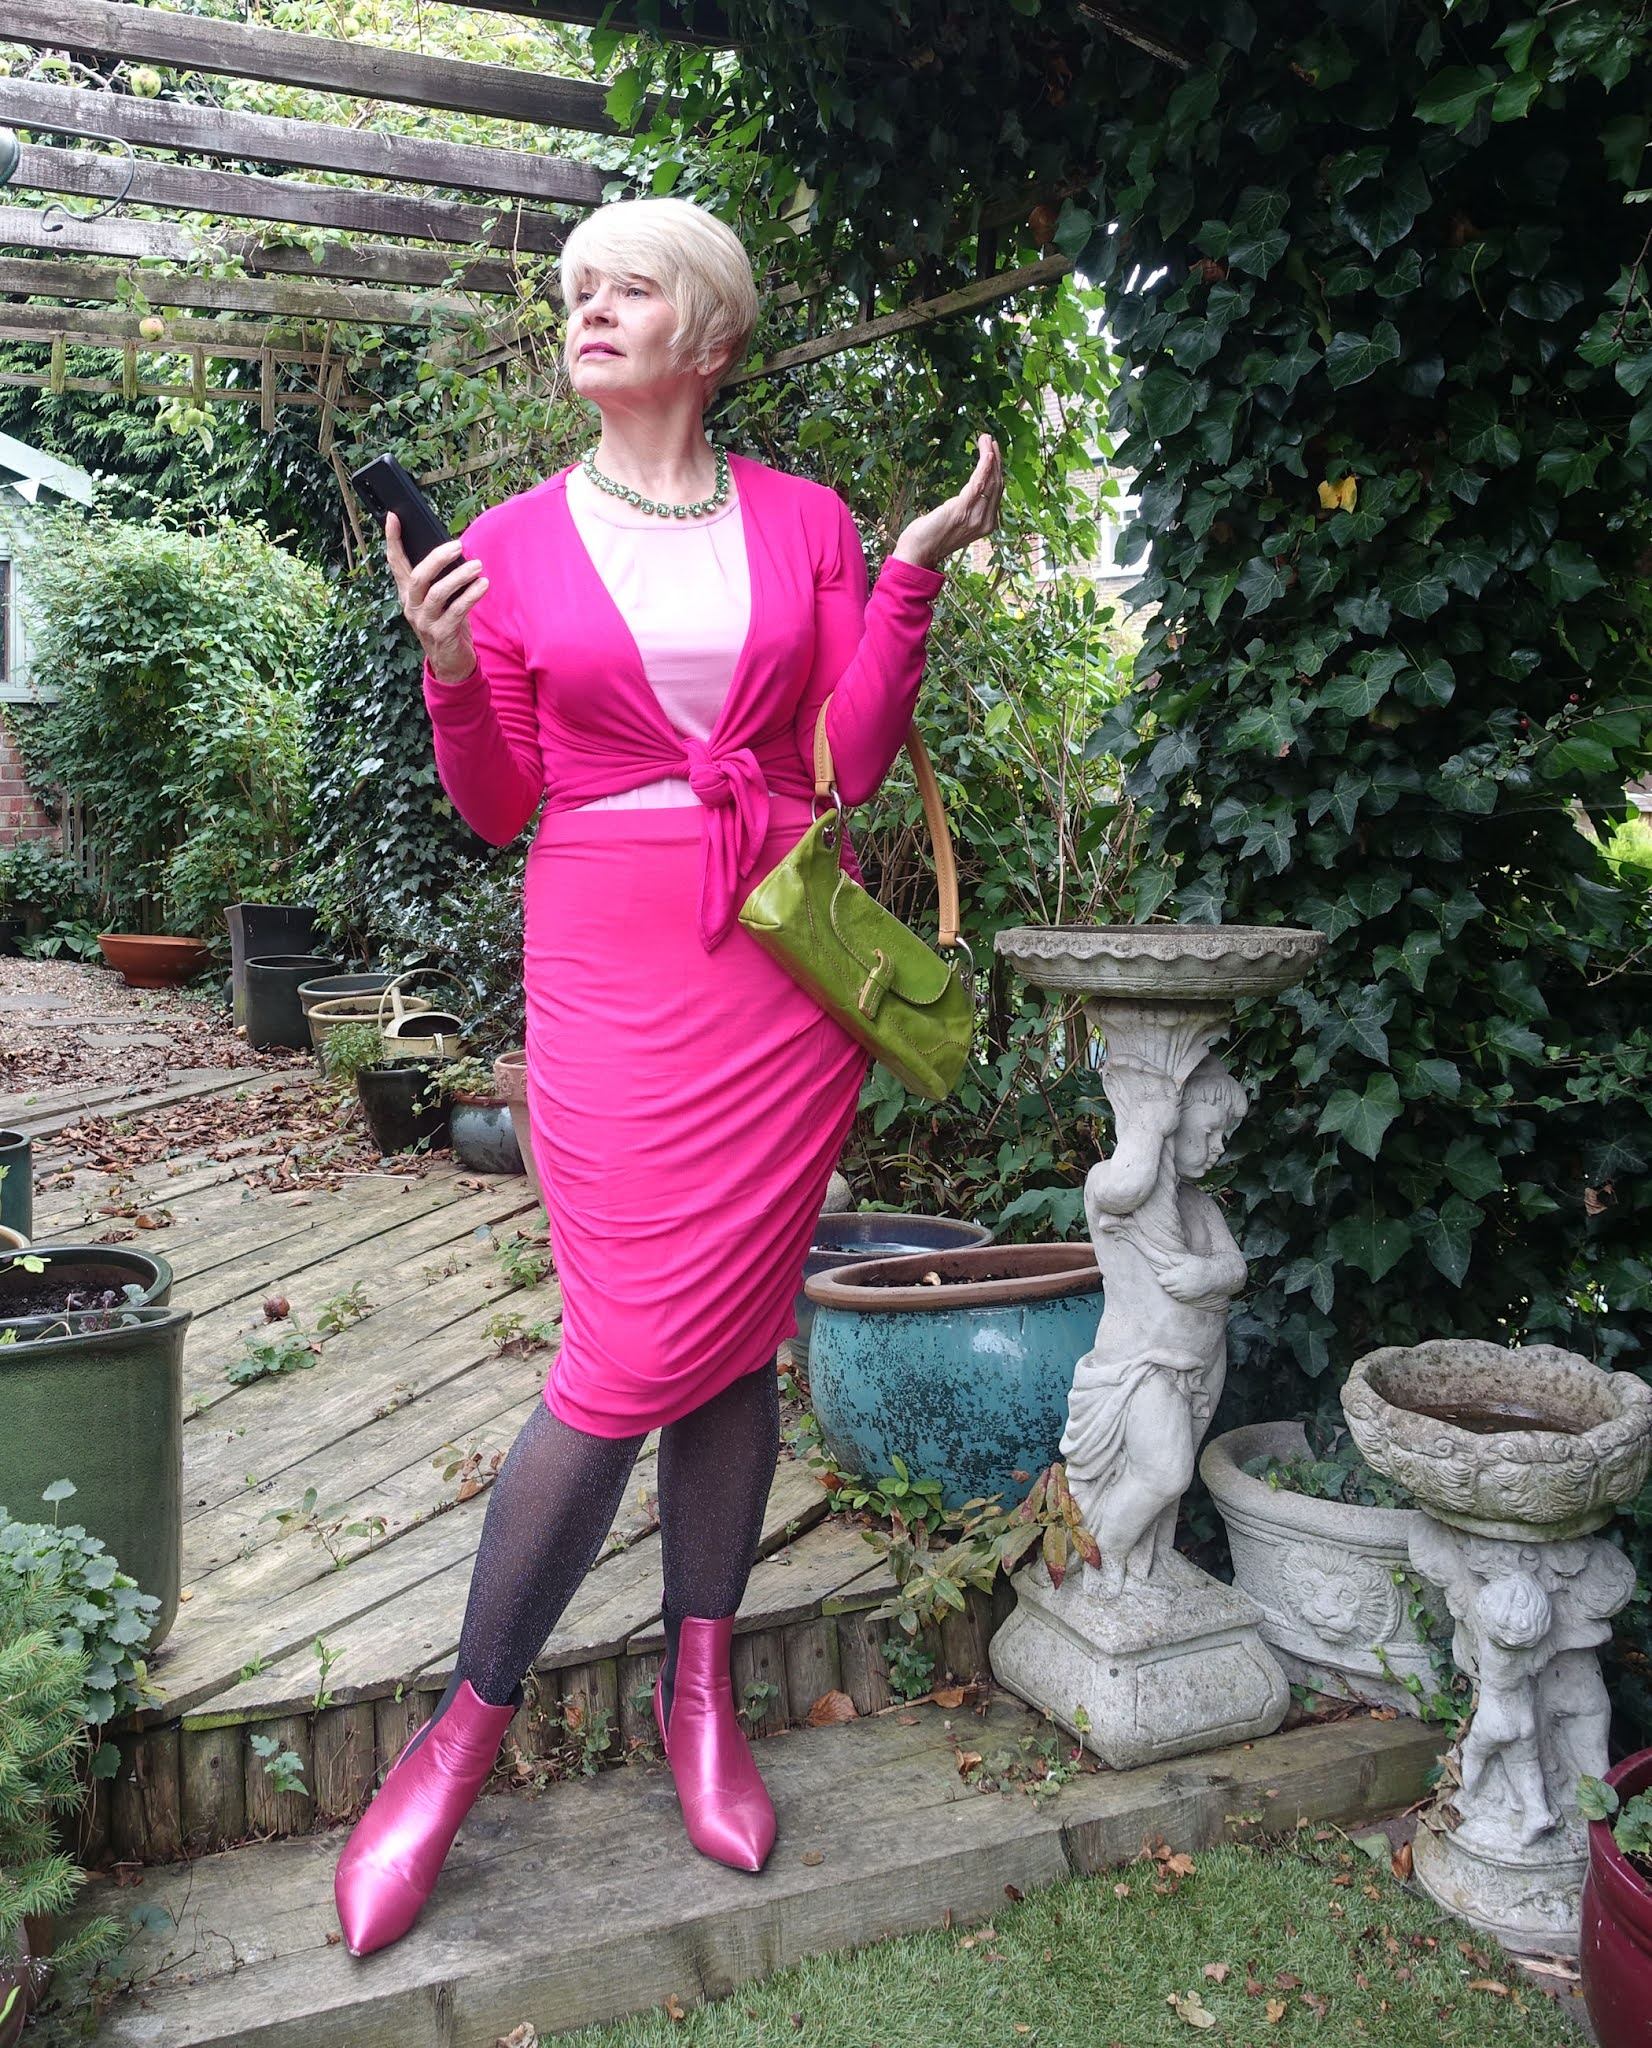 Striking a theatrical pose, Gail Hanlon from Is This Mutton in ruched skirt, short tie wrap and top in pink from Kettlewell and pink boots